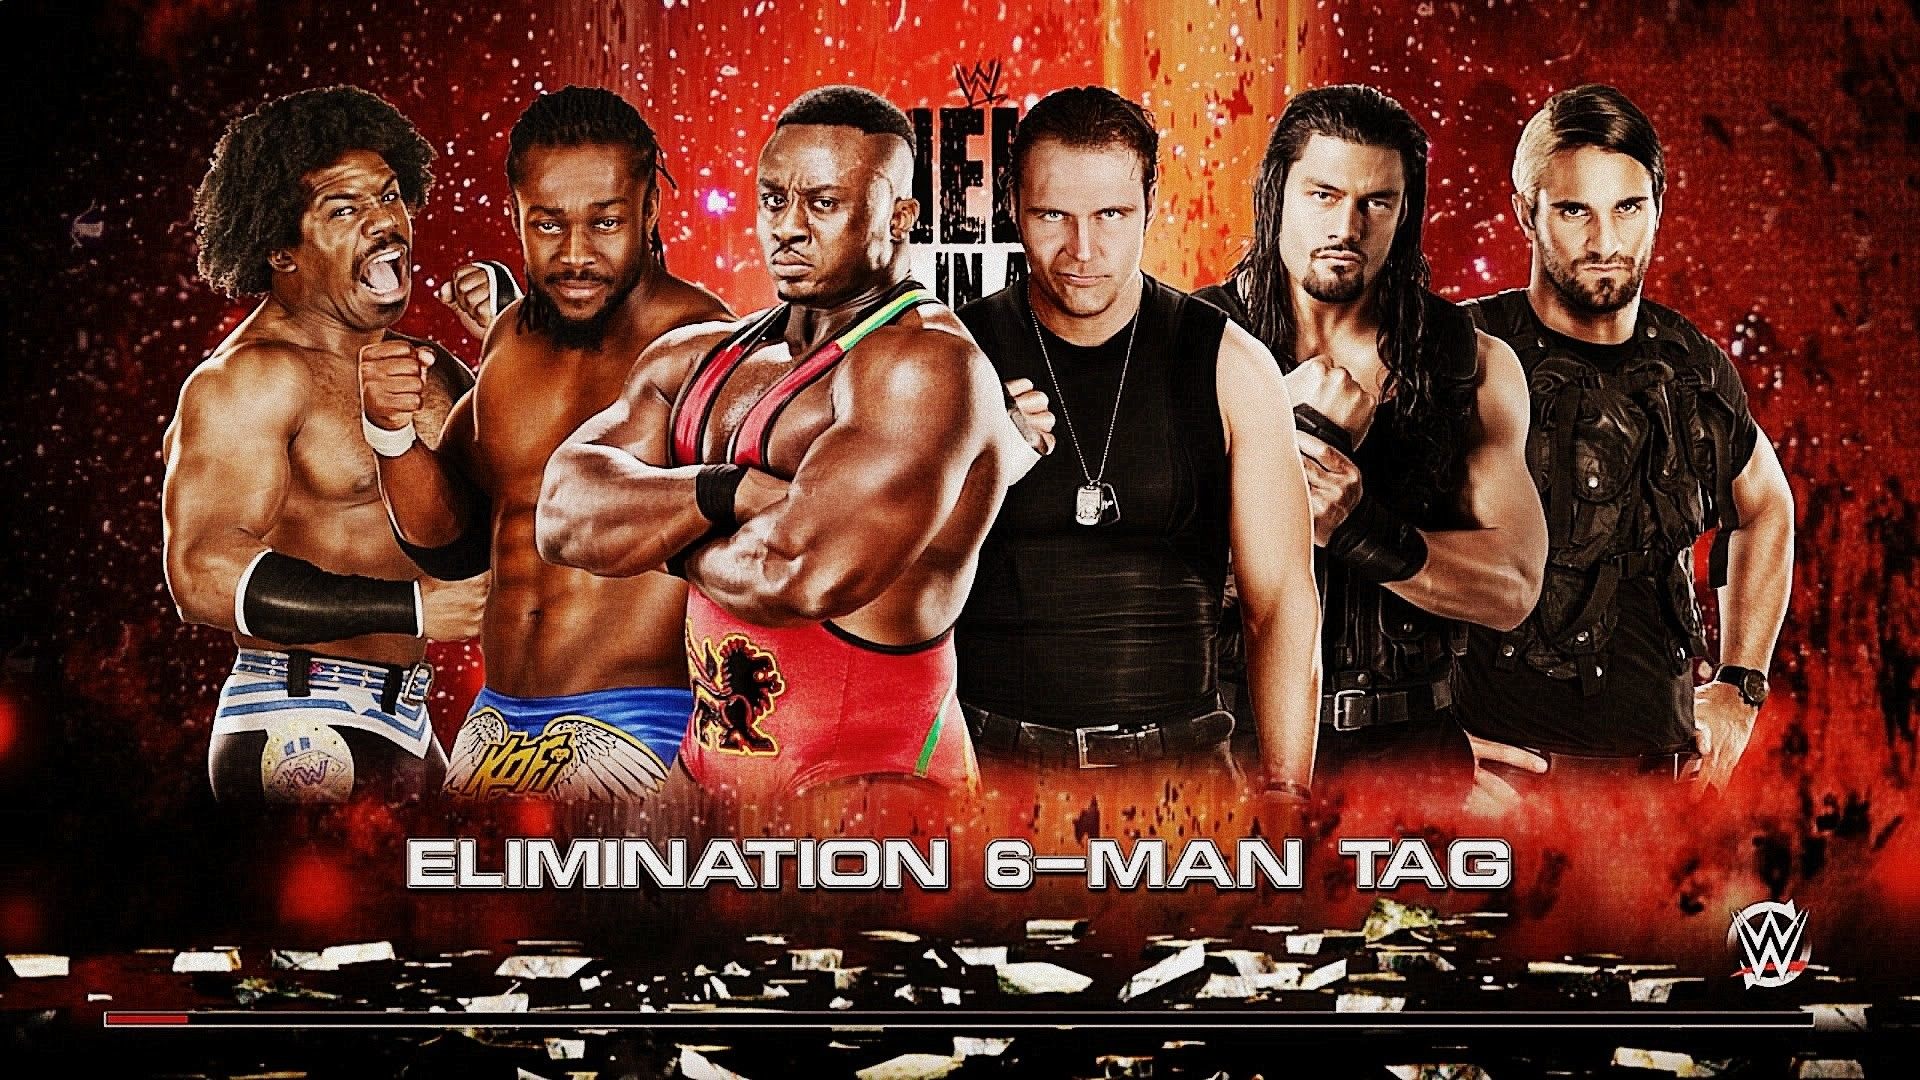 Elimination 6 Man Tag Match, The New Day vs The Shield [WWE 2K15] – YouTube